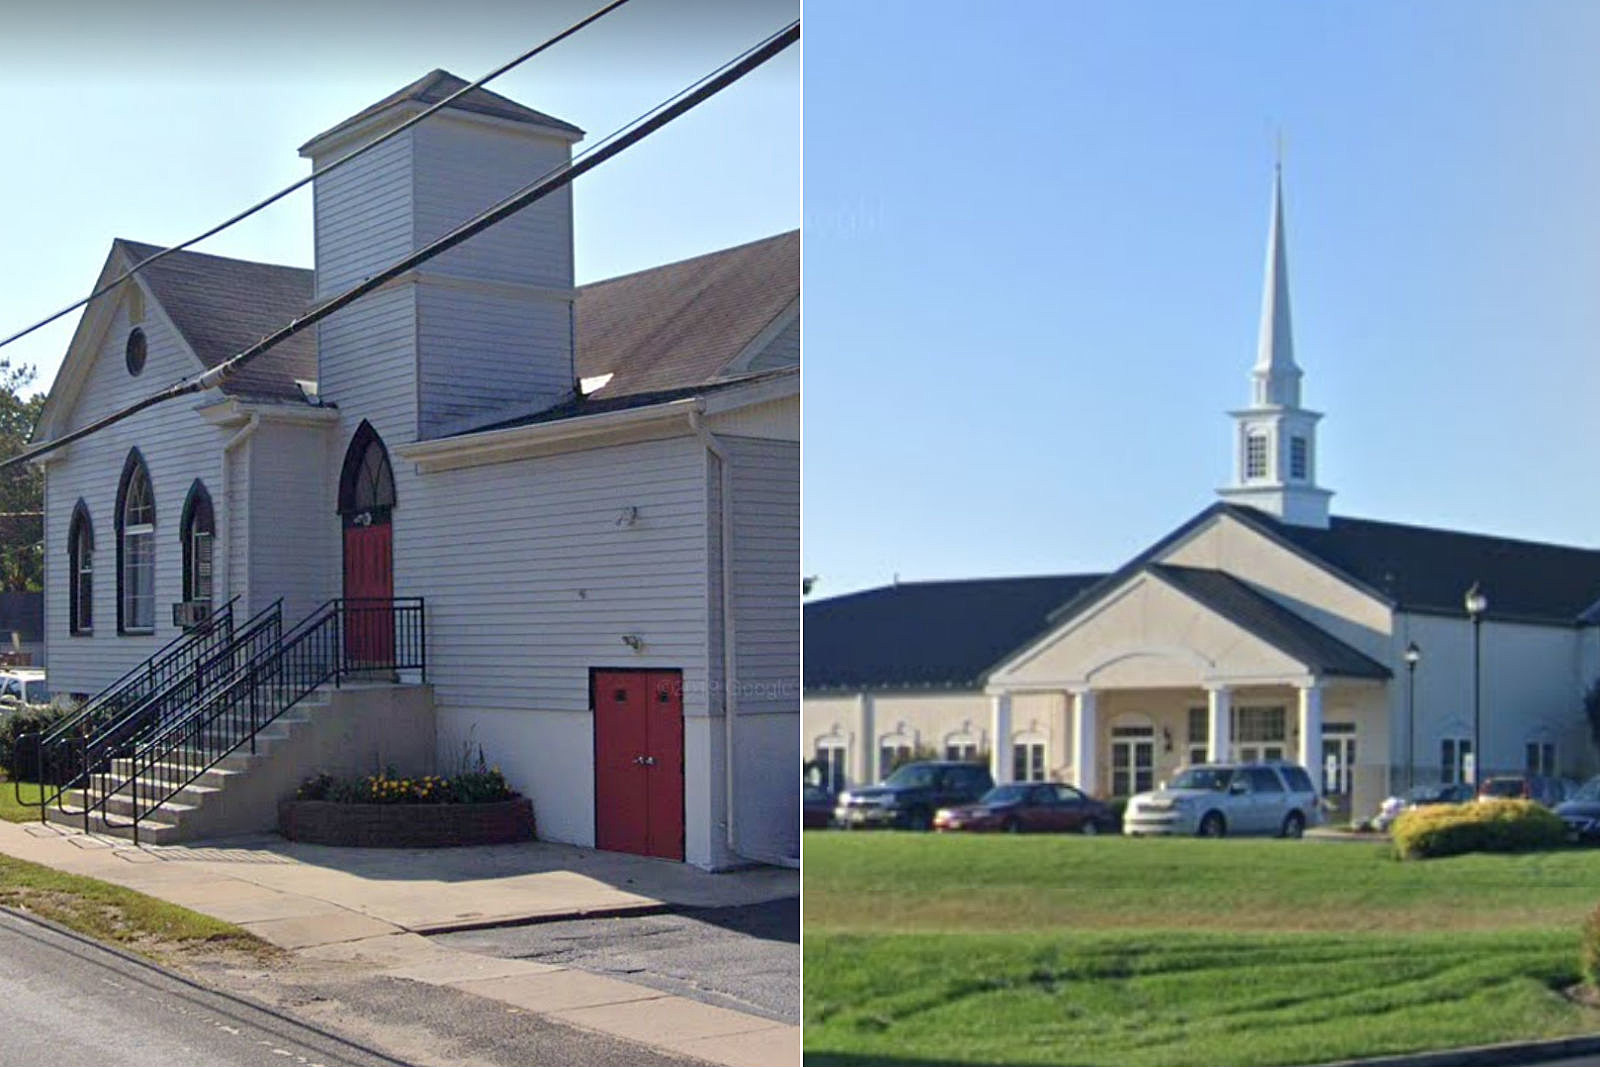 No fireworks' as South Jersey churches hold services, get cited